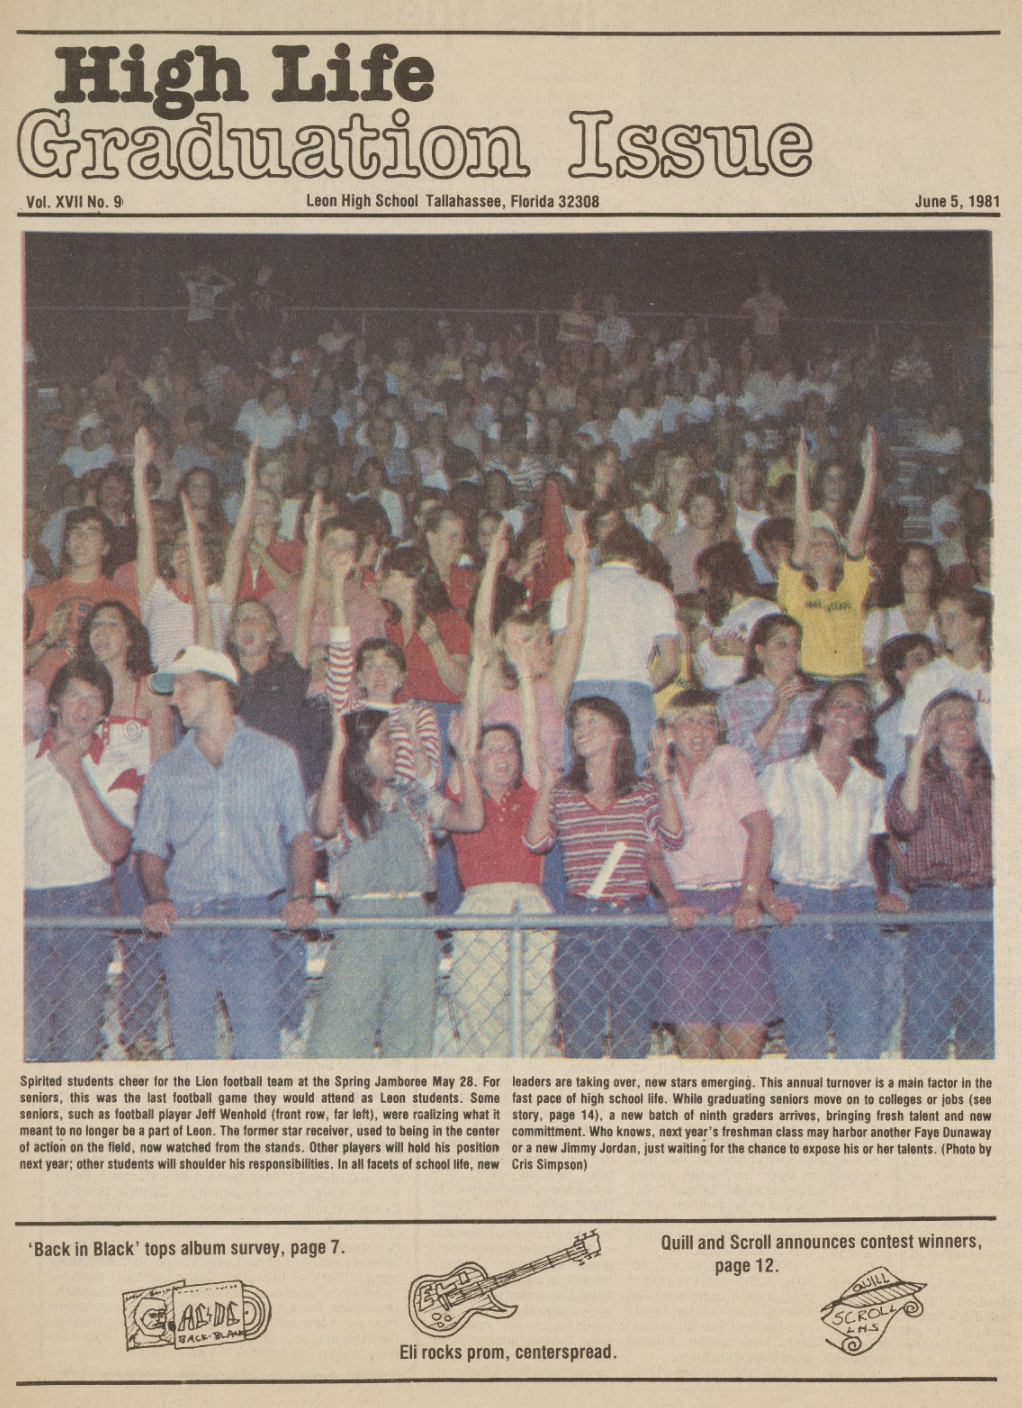 High Life Graduation Issue Front Page, June 5, 1981